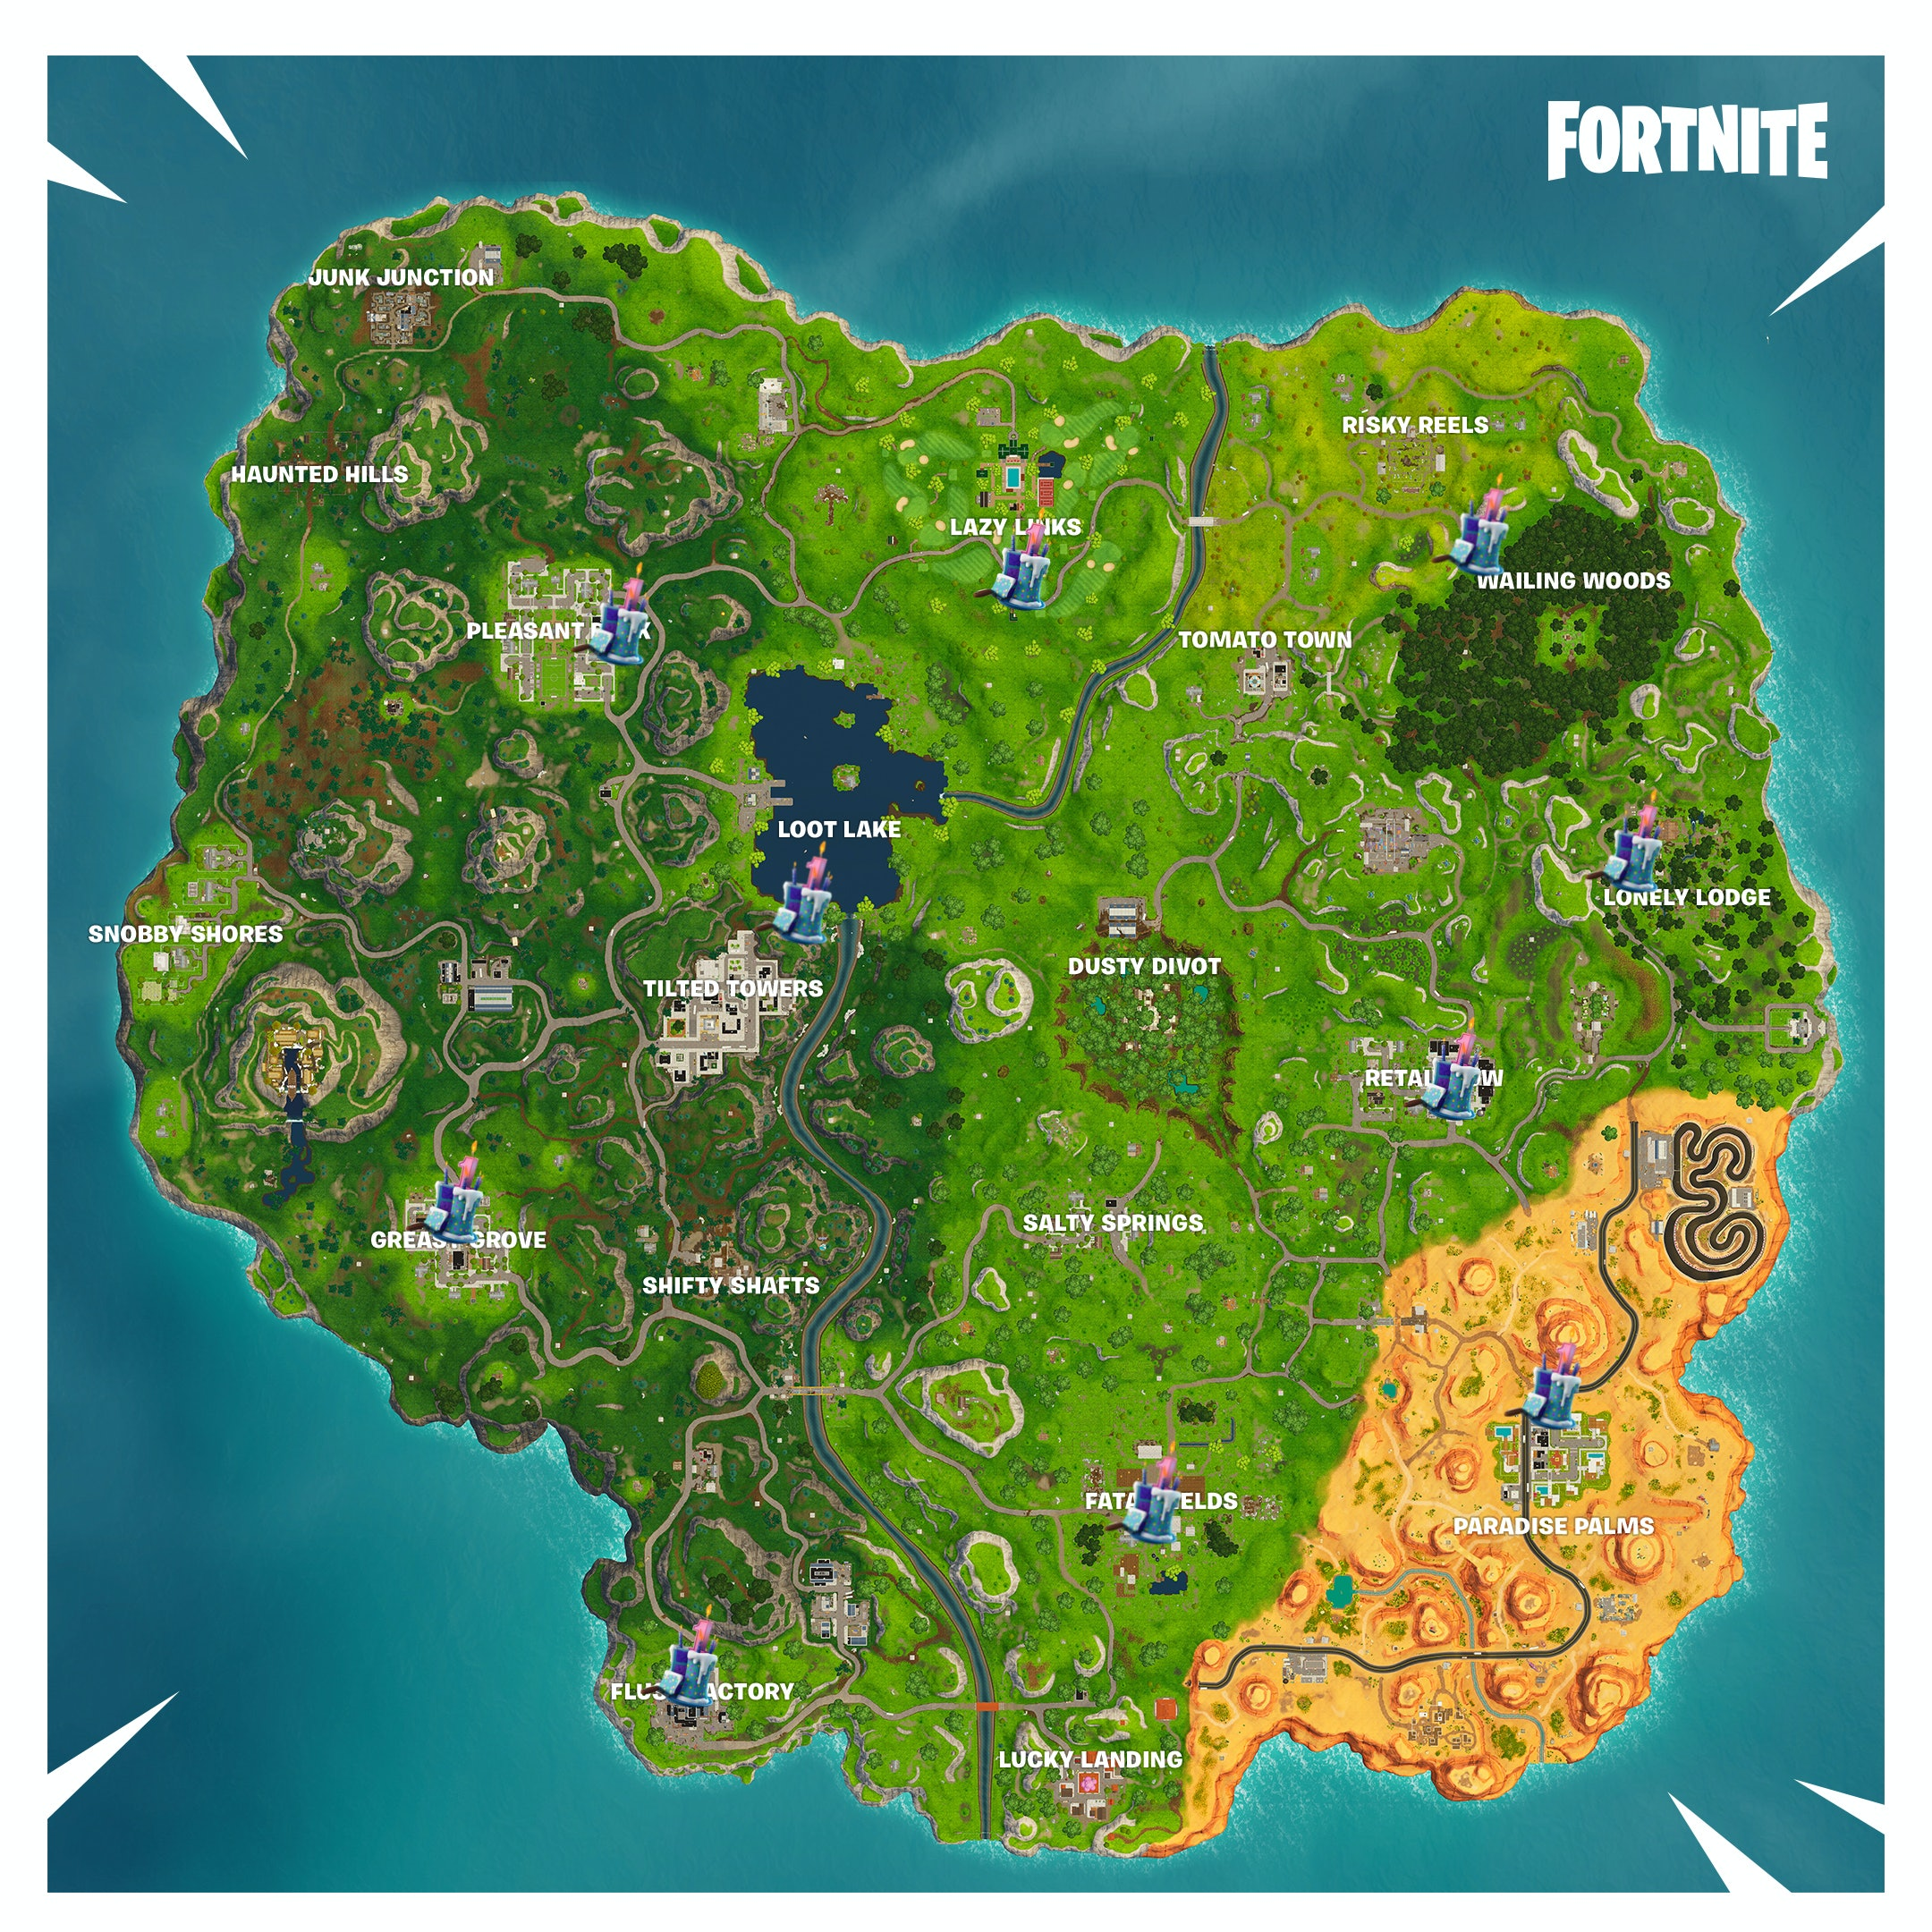 Fortnite Birthday Cake Locations Where To Find Every Cake On The Map